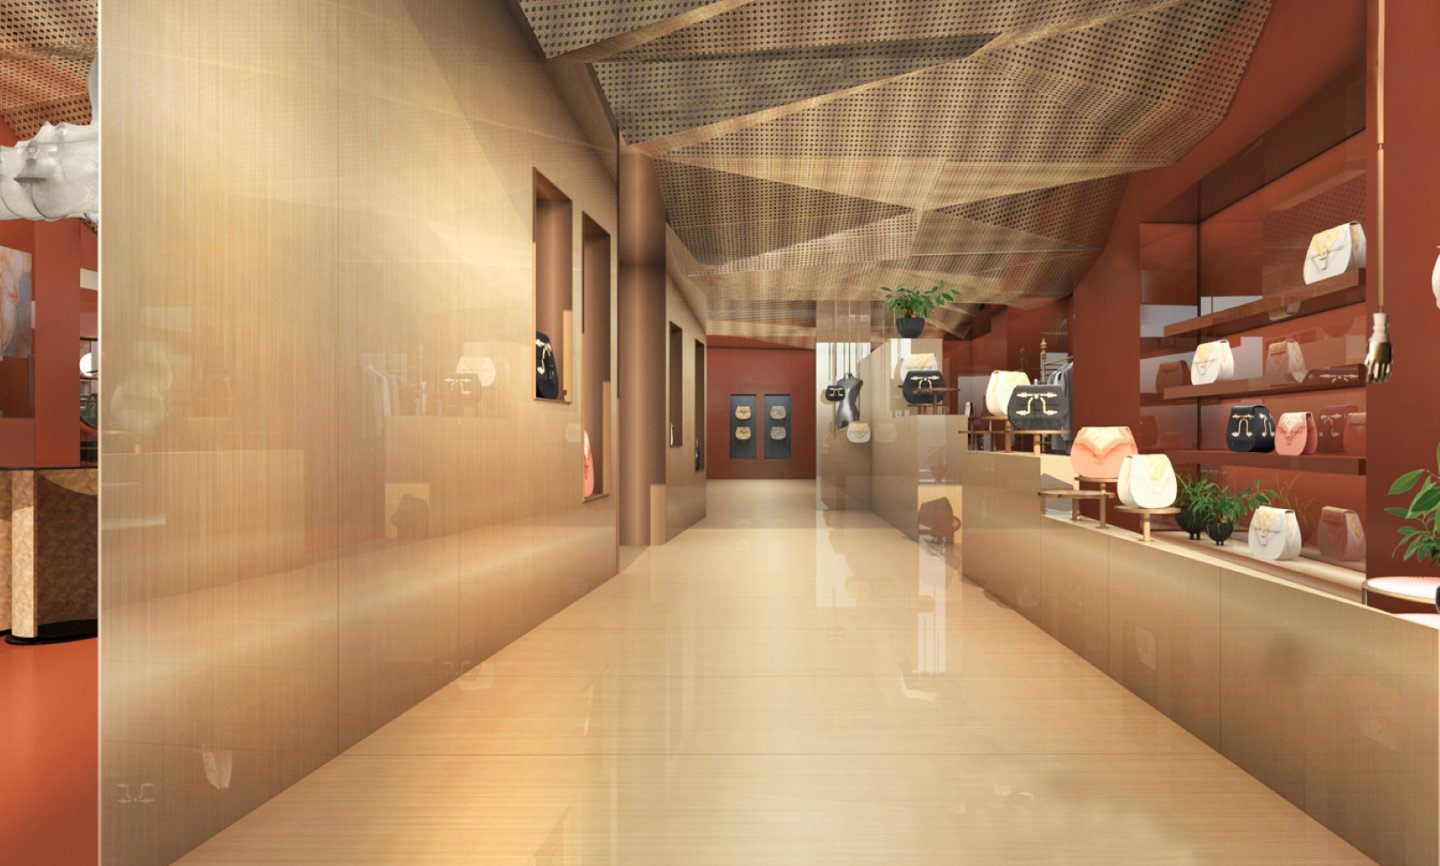 Okhtein Flagship Store - concept design image